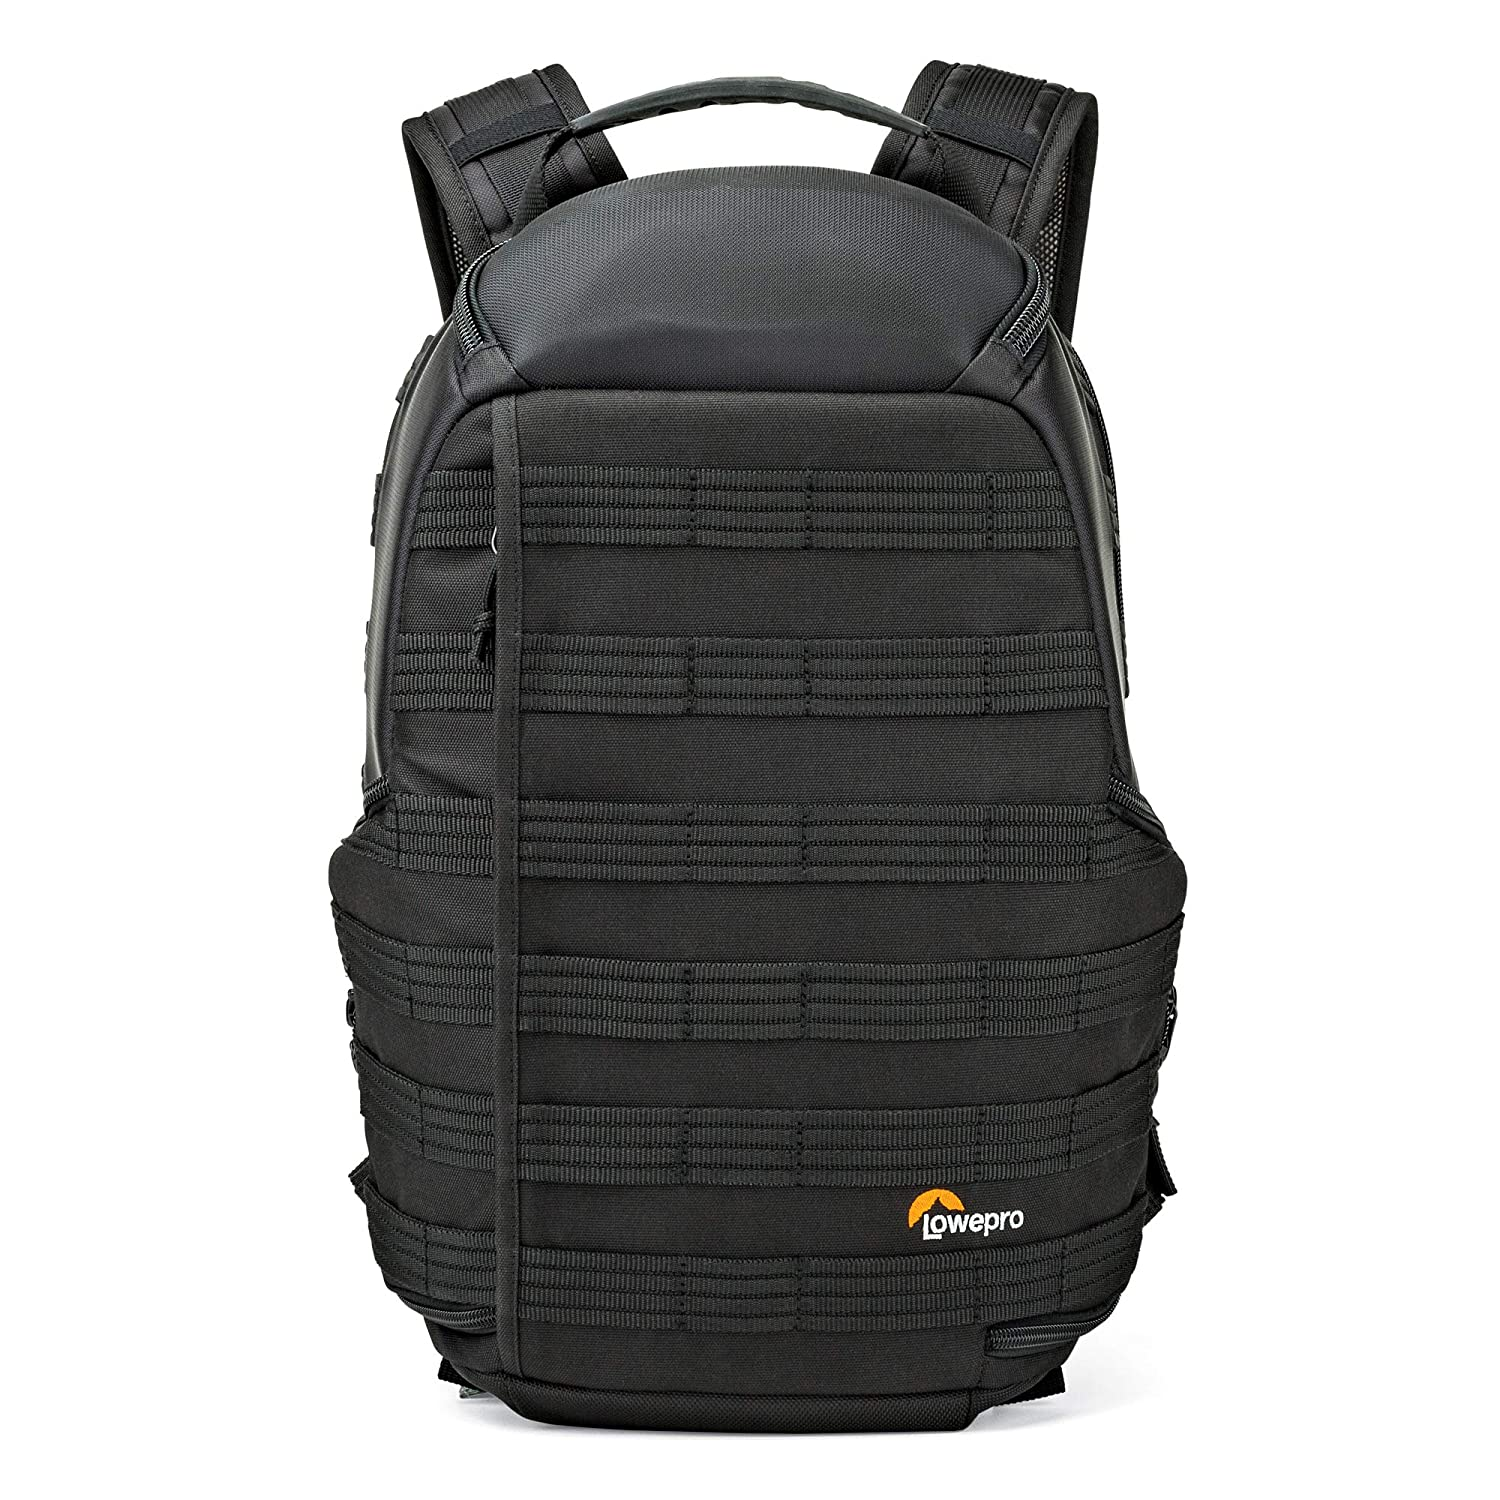 Lowepro Pro Tactic BP 250 AW Backpack and Daypack for Mirrorless Camera and DJI Spark Drone LP36921